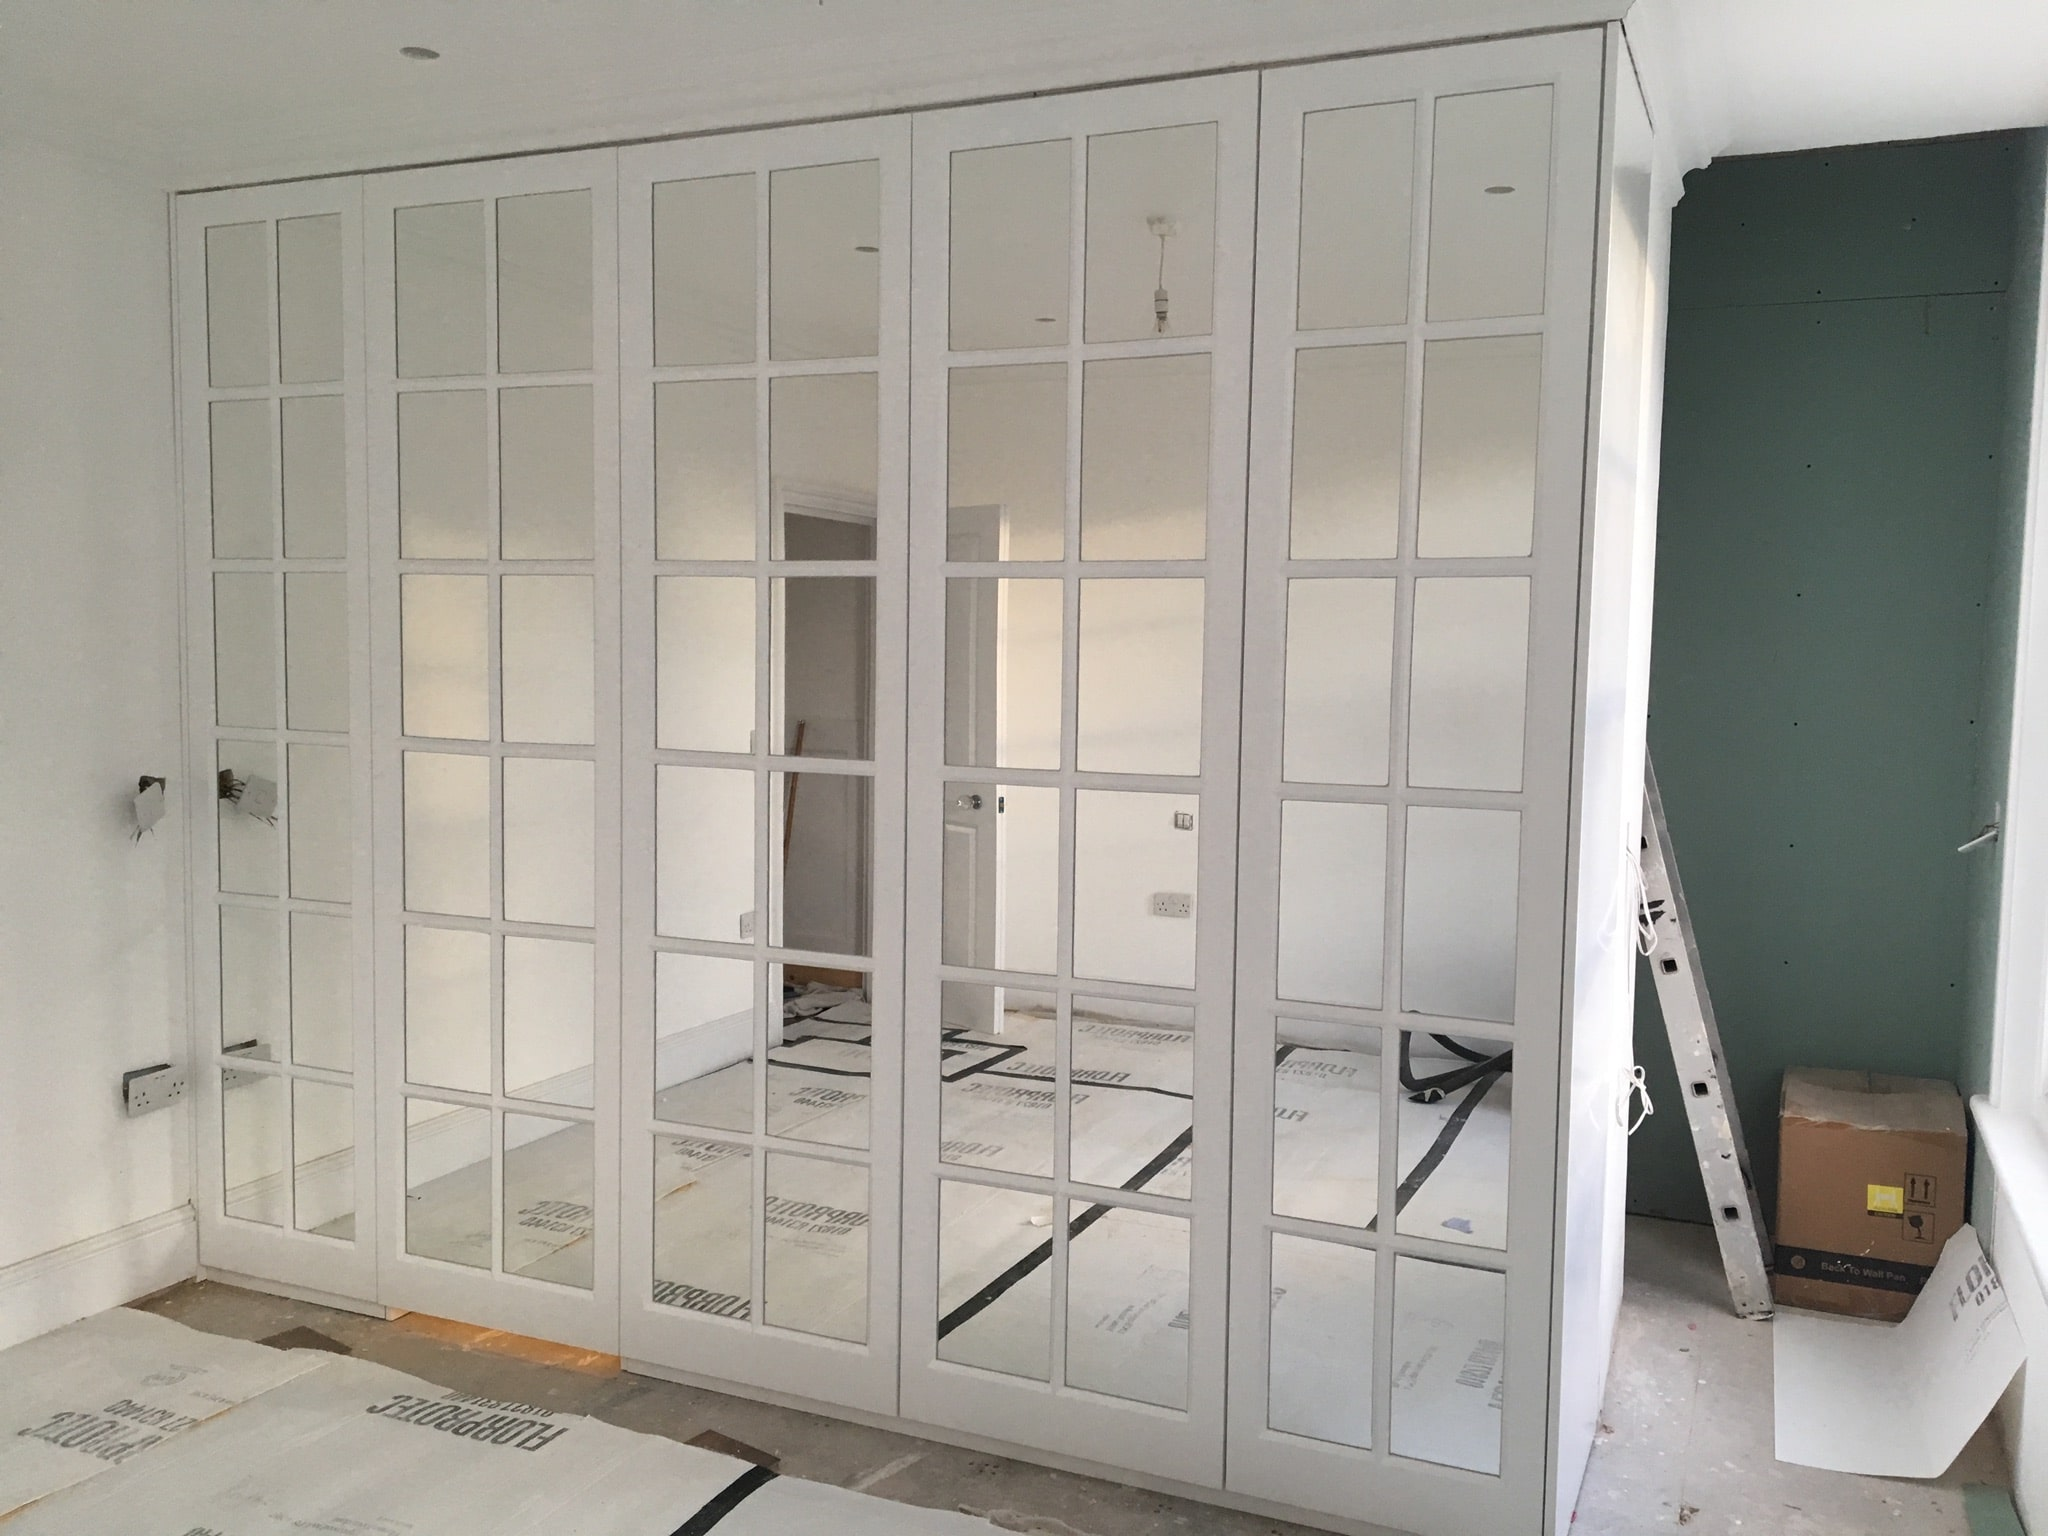 Fitted wardrobe with mirror door.